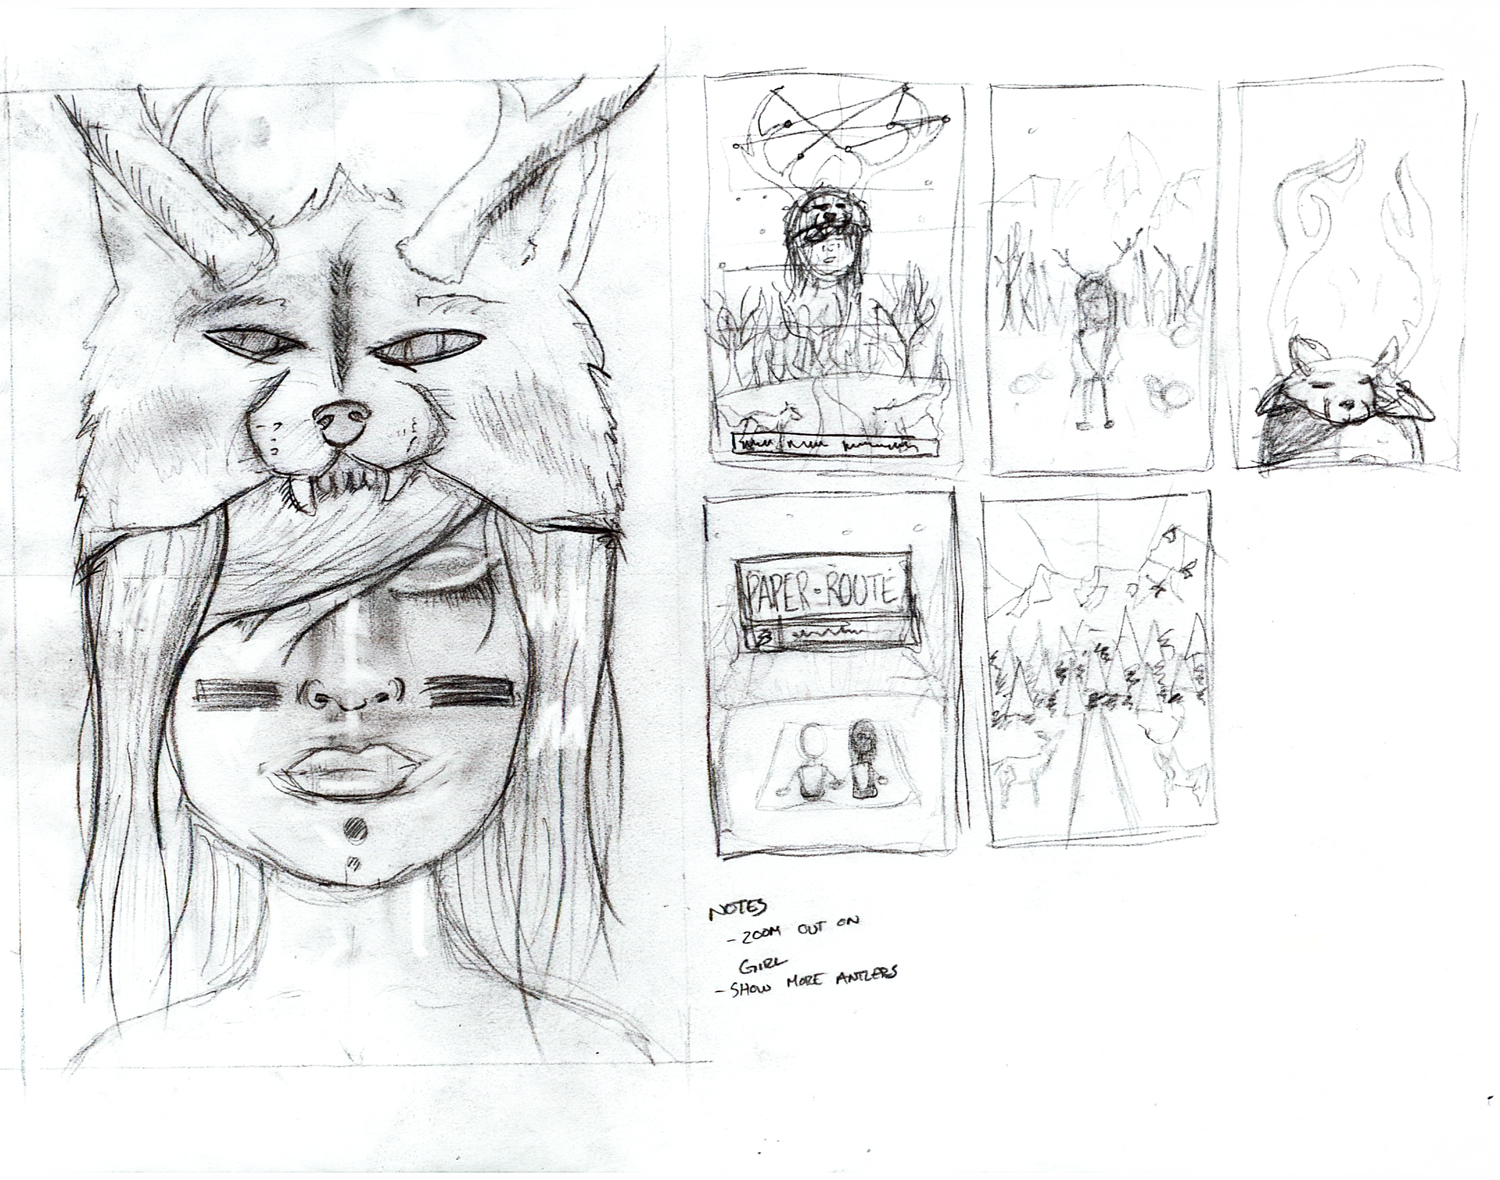 Paper Route - image 12 - student project